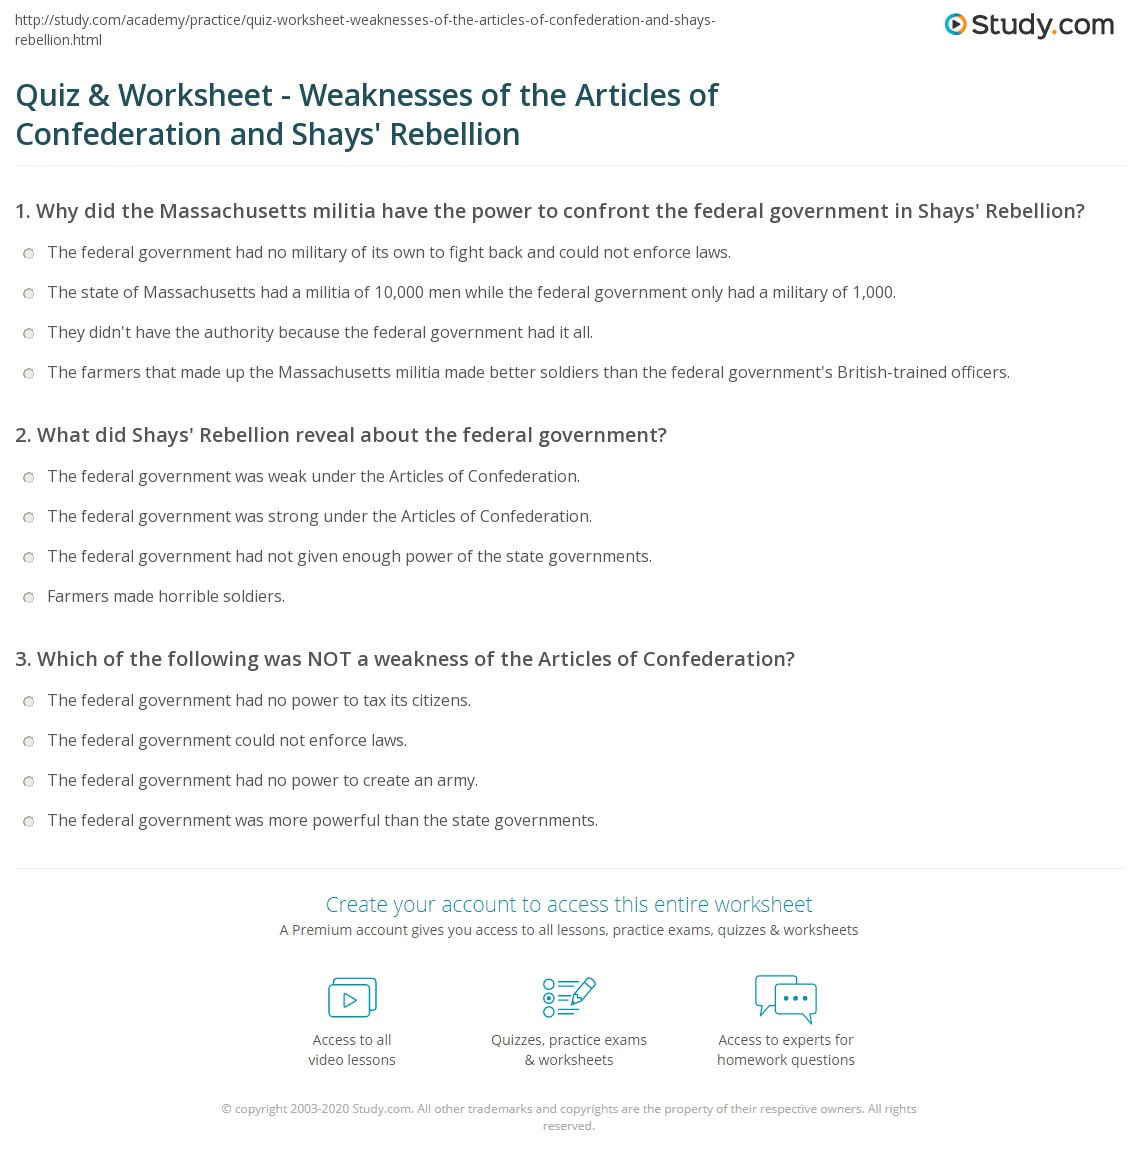 quiz worksheet weaknesses of the articles of confederation and shays 39 rebellion. Black Bedroom Furniture Sets. Home Design Ideas